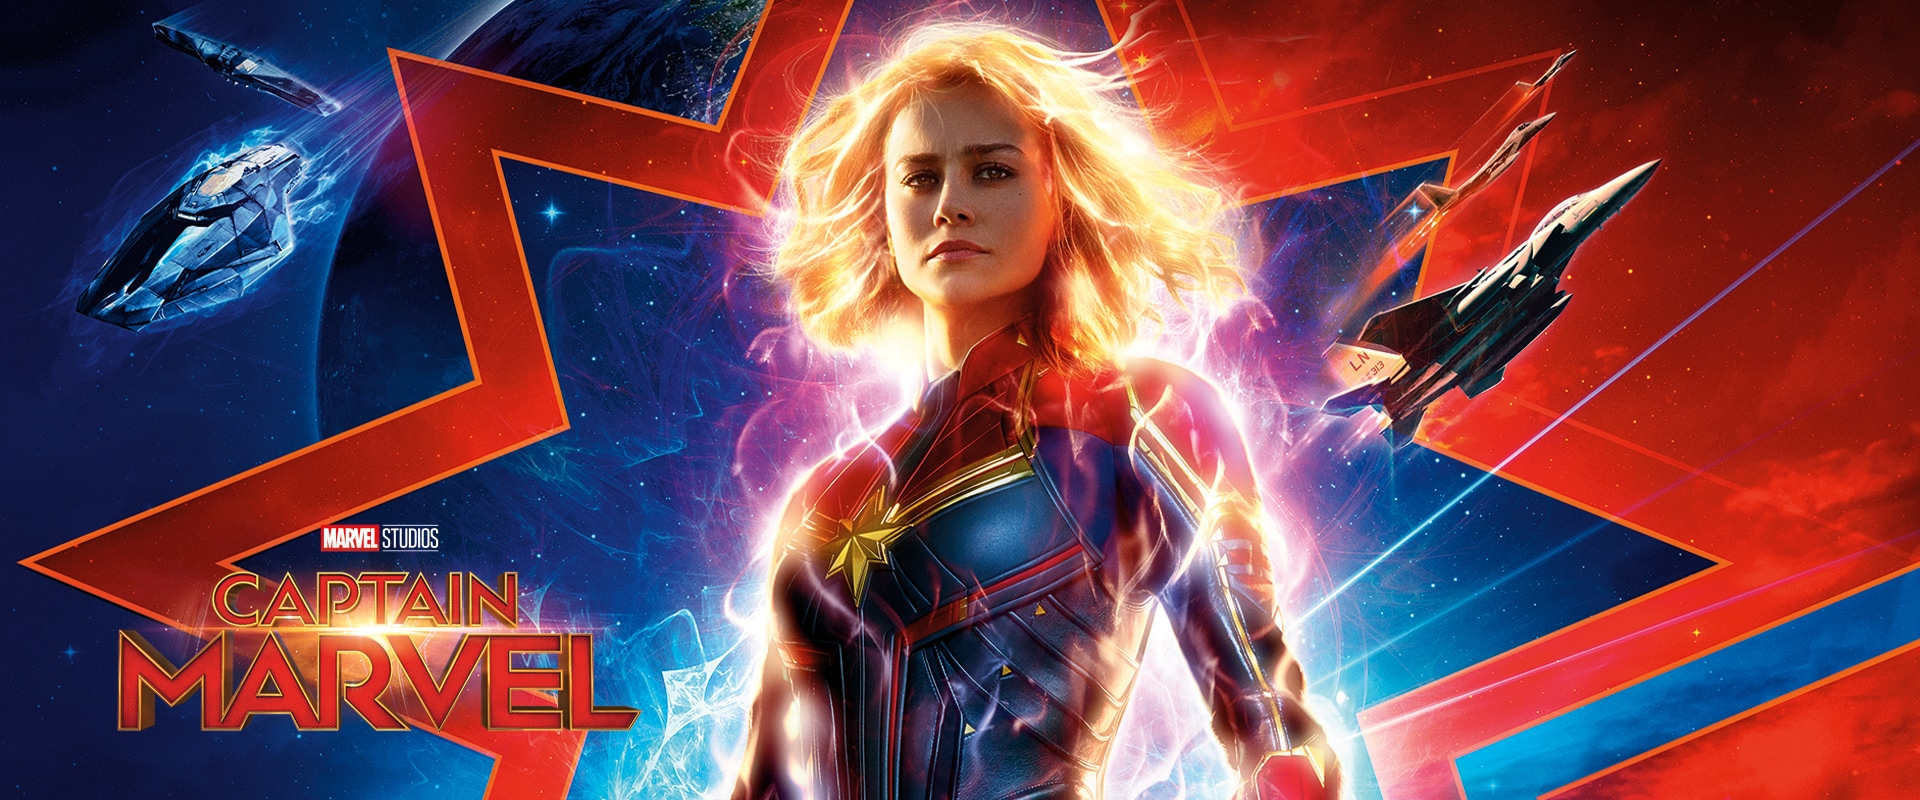 Marvel Studios' Captain Marvel - EMEA Banner